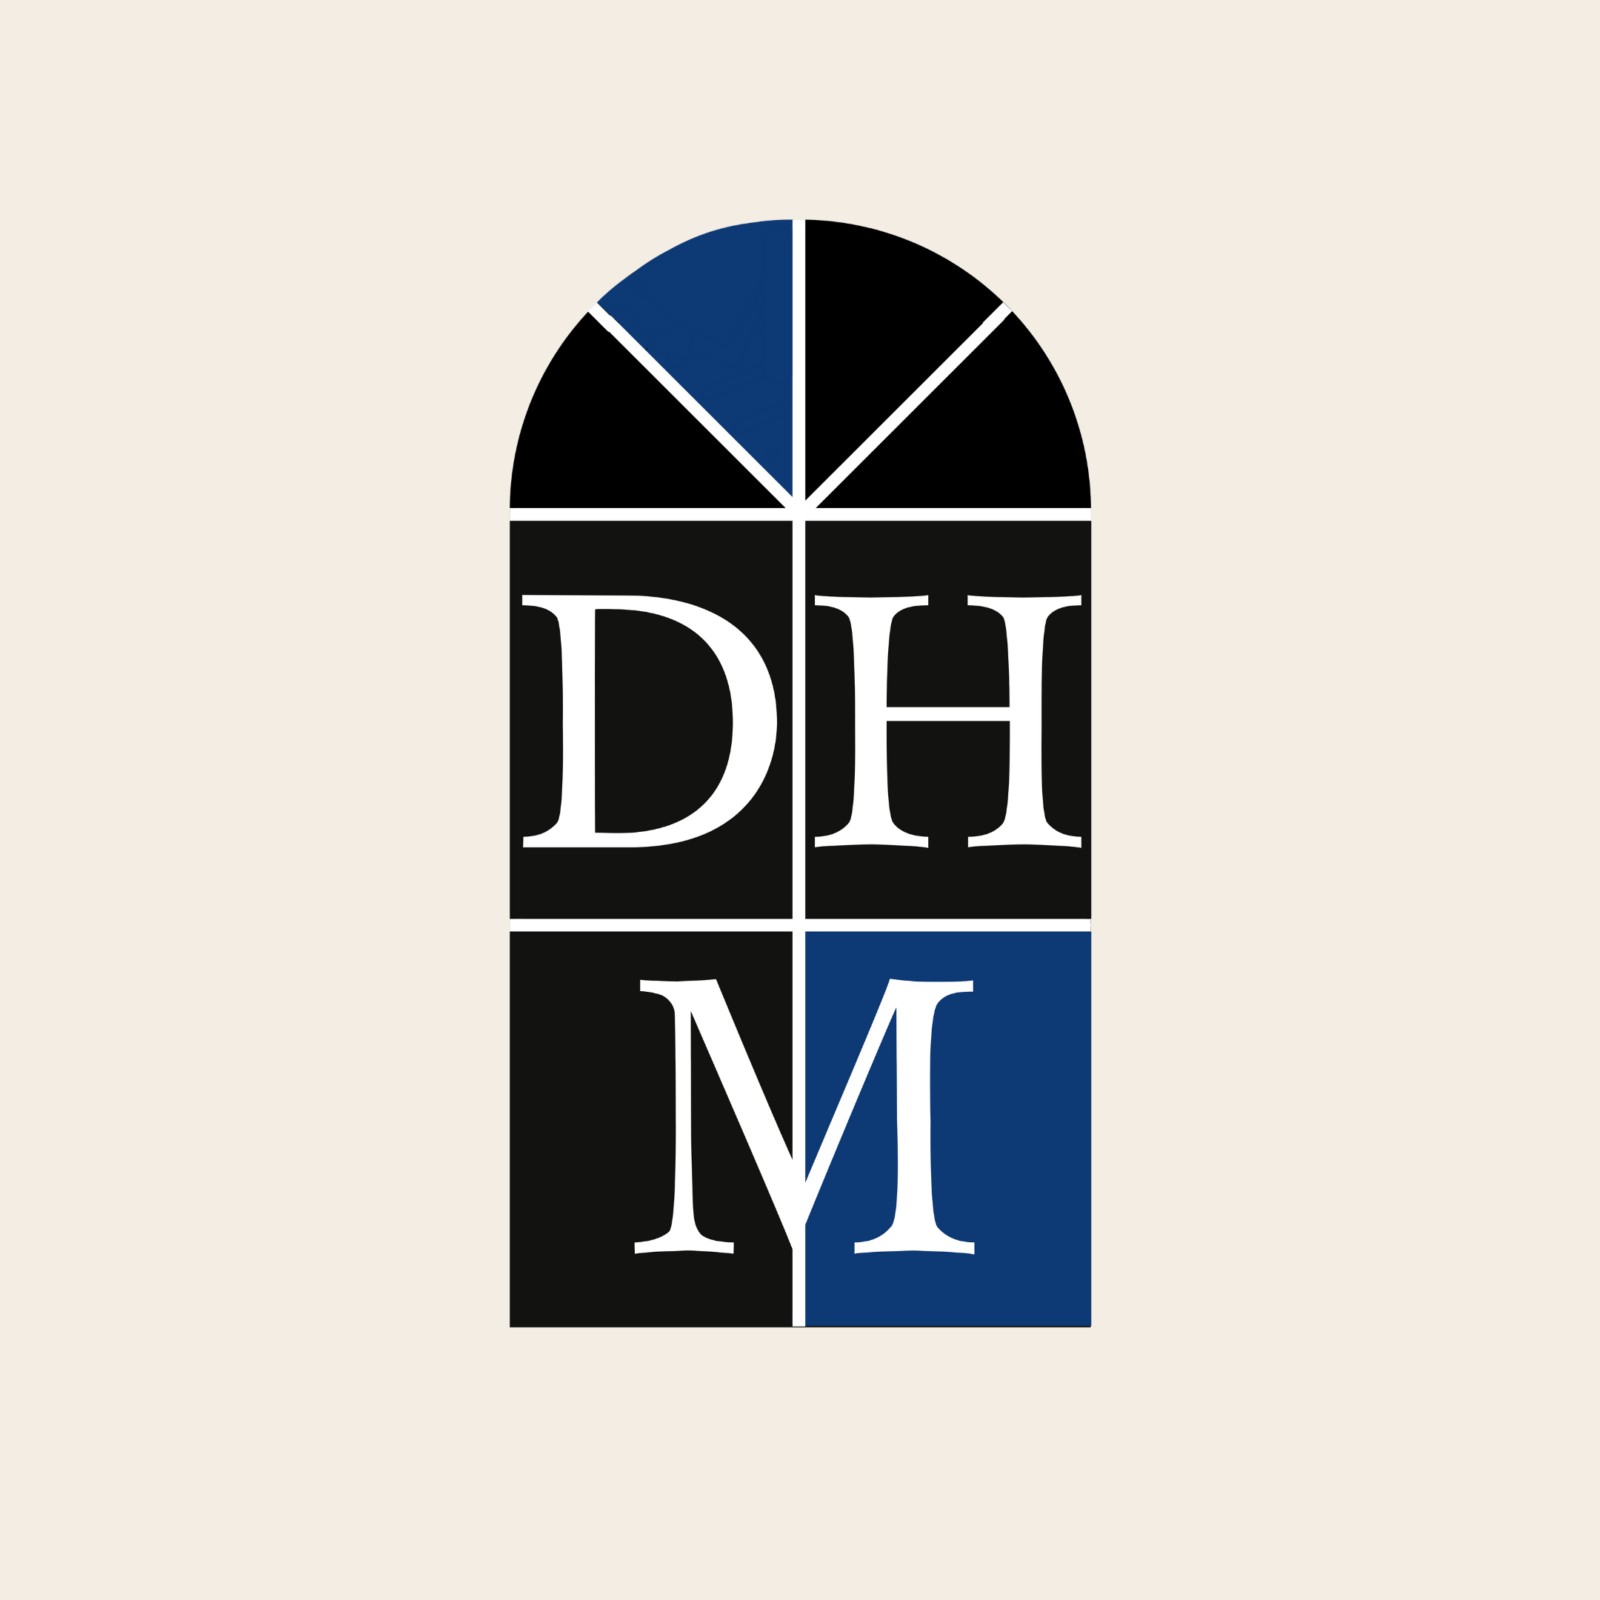 Logo for Dartmouth Herithage Museum. Features an arched window design with black and blue colours and